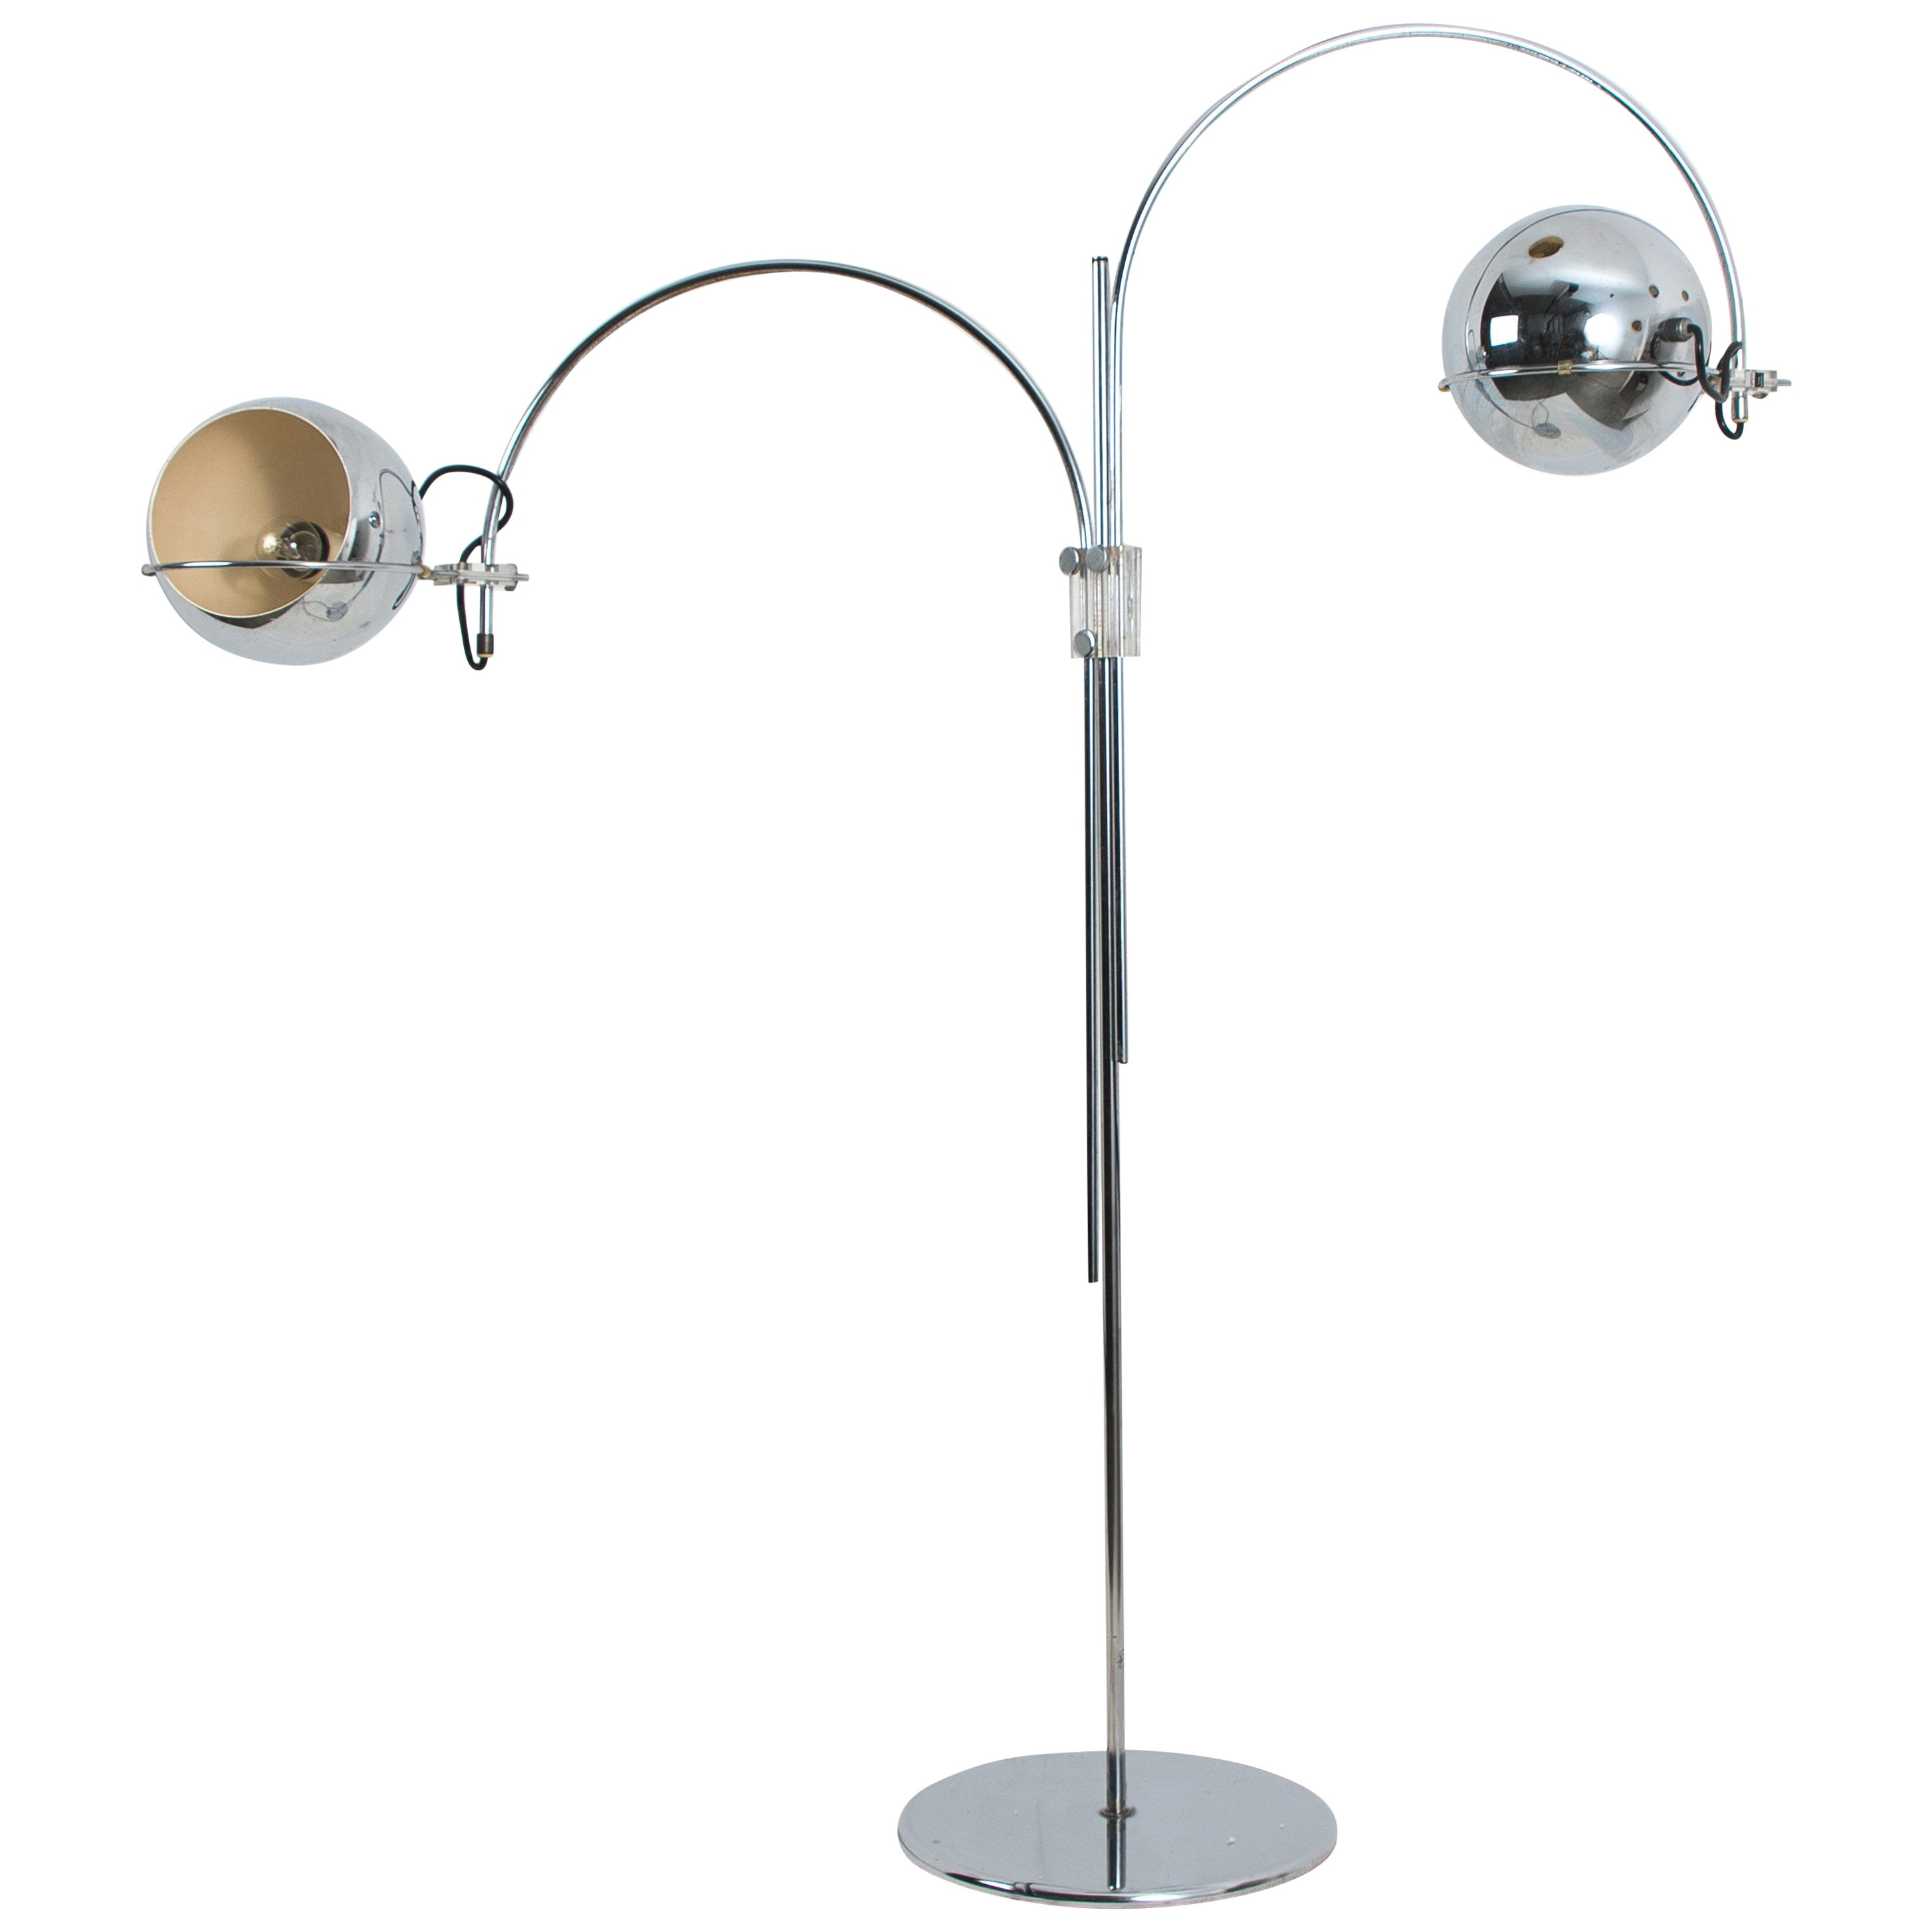 Dutch Chrome Floor Lamp from Gepo, Double Eye-Ball, 1960s